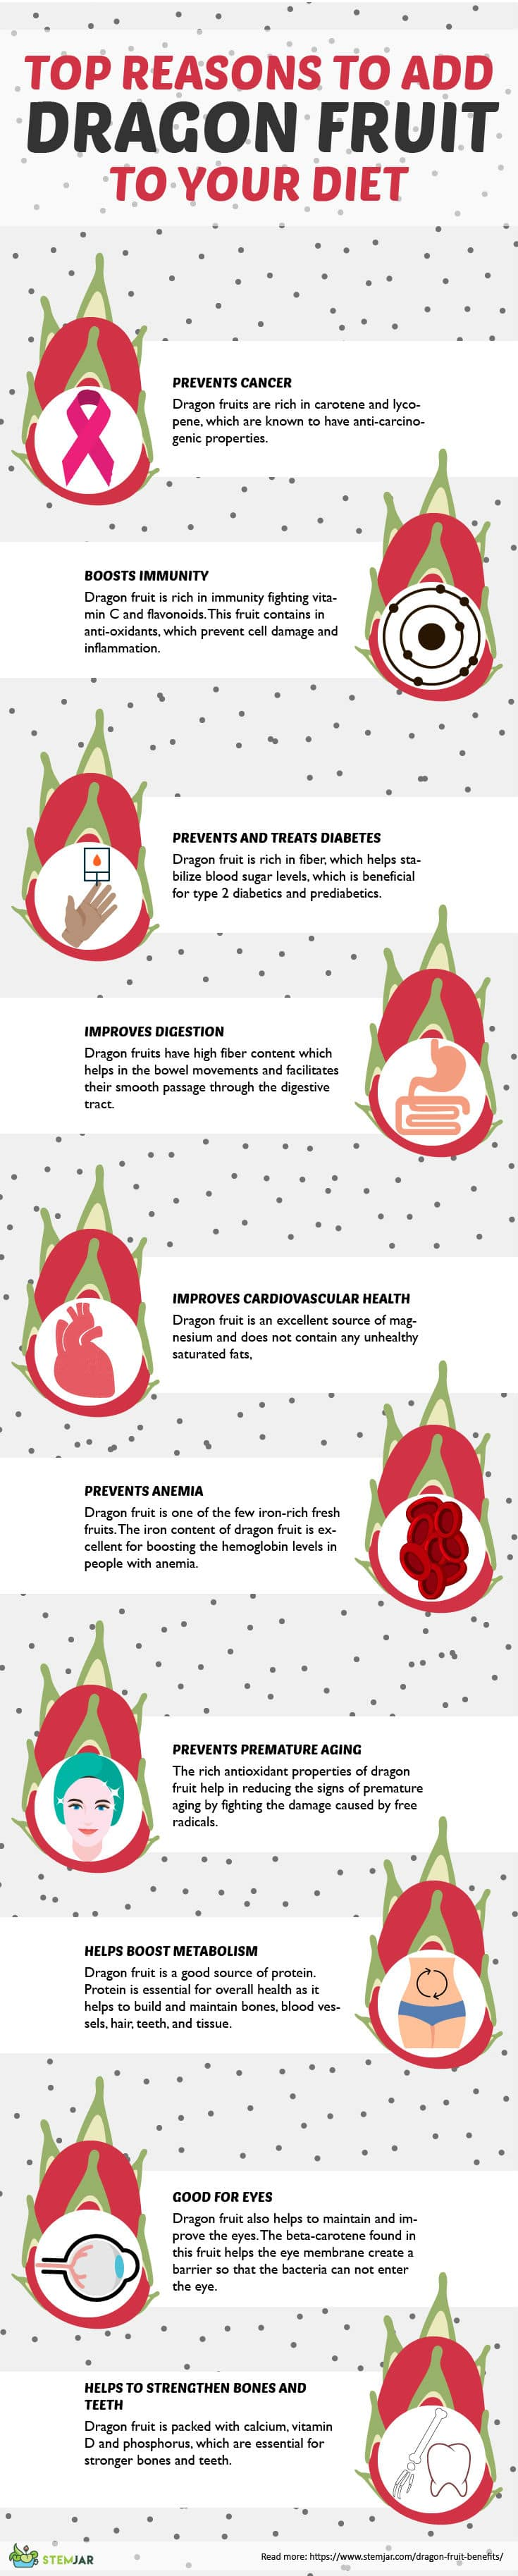 Dragon fruit benefits infographic